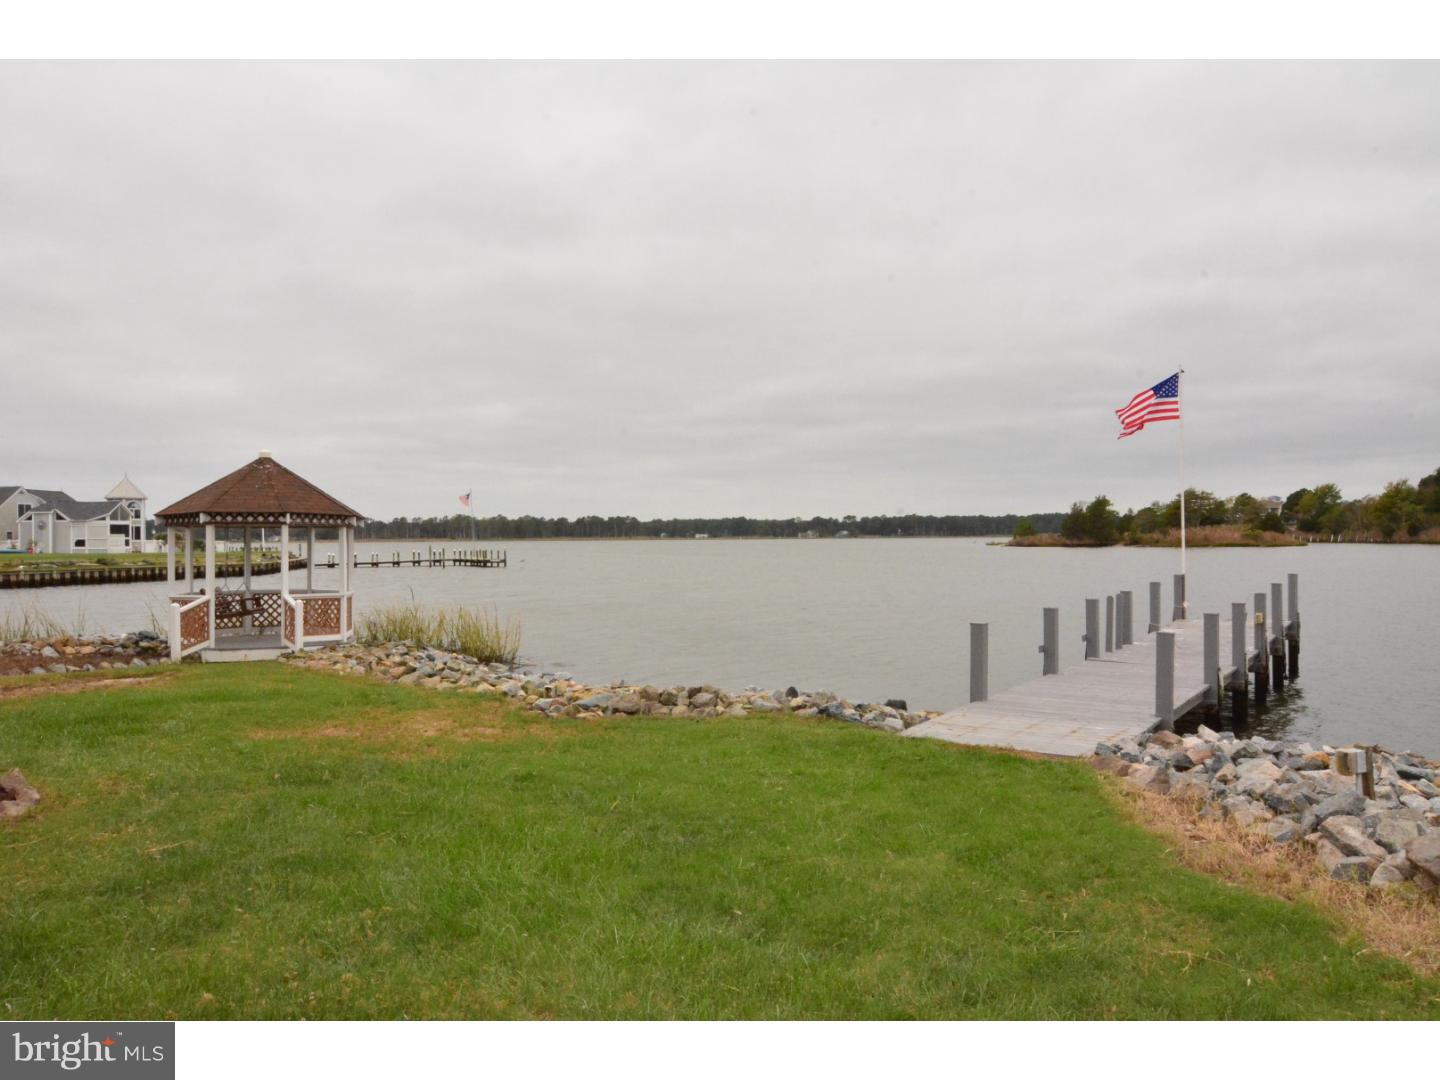 The Point picture perfect location. With panoramic waterfront views. This home is located in a prvt